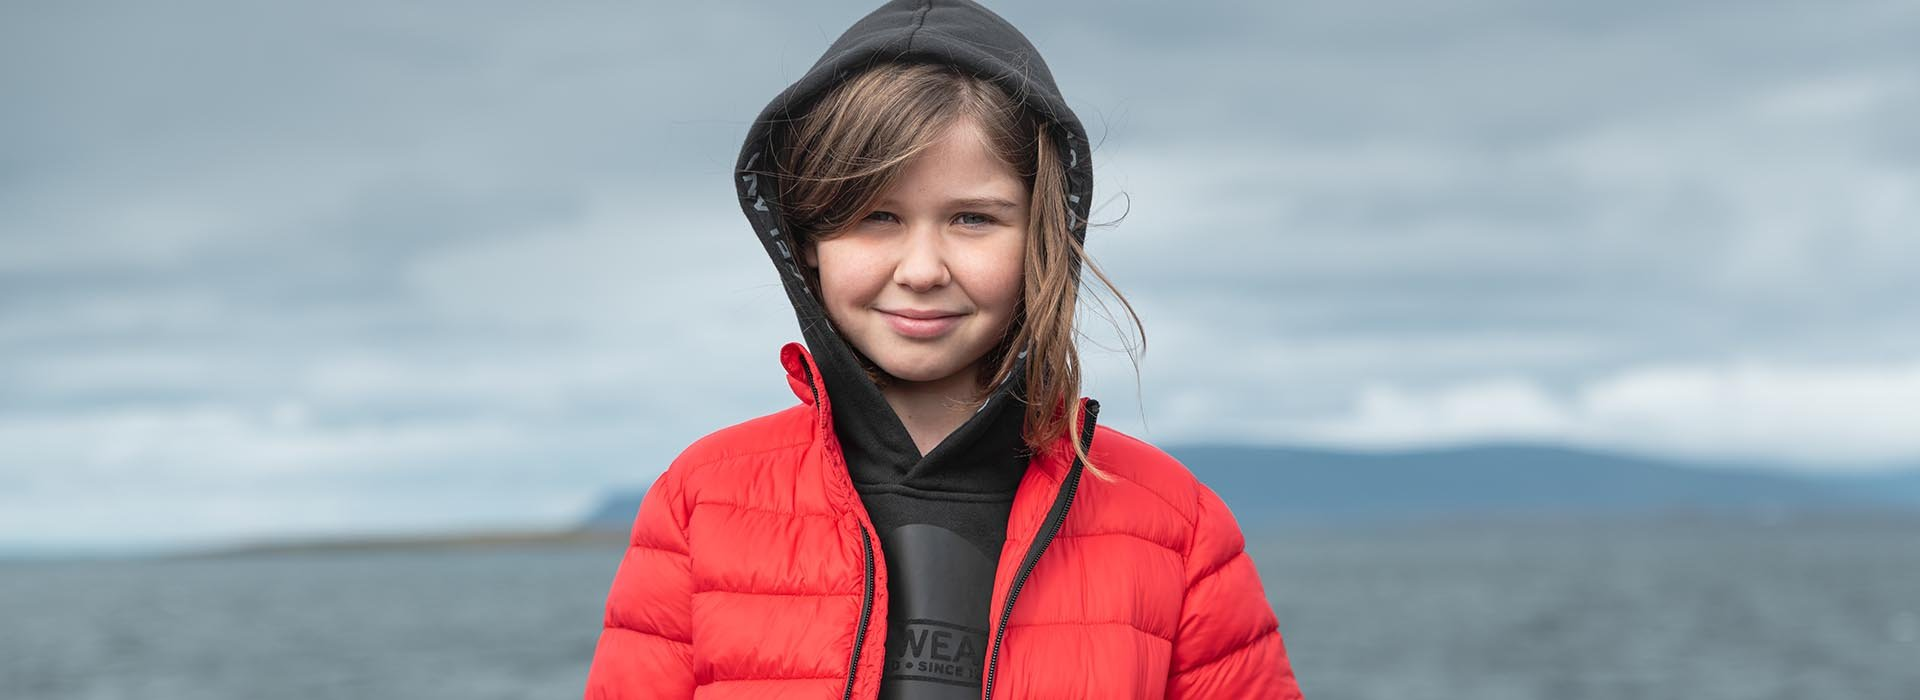 Padded jackets for kids